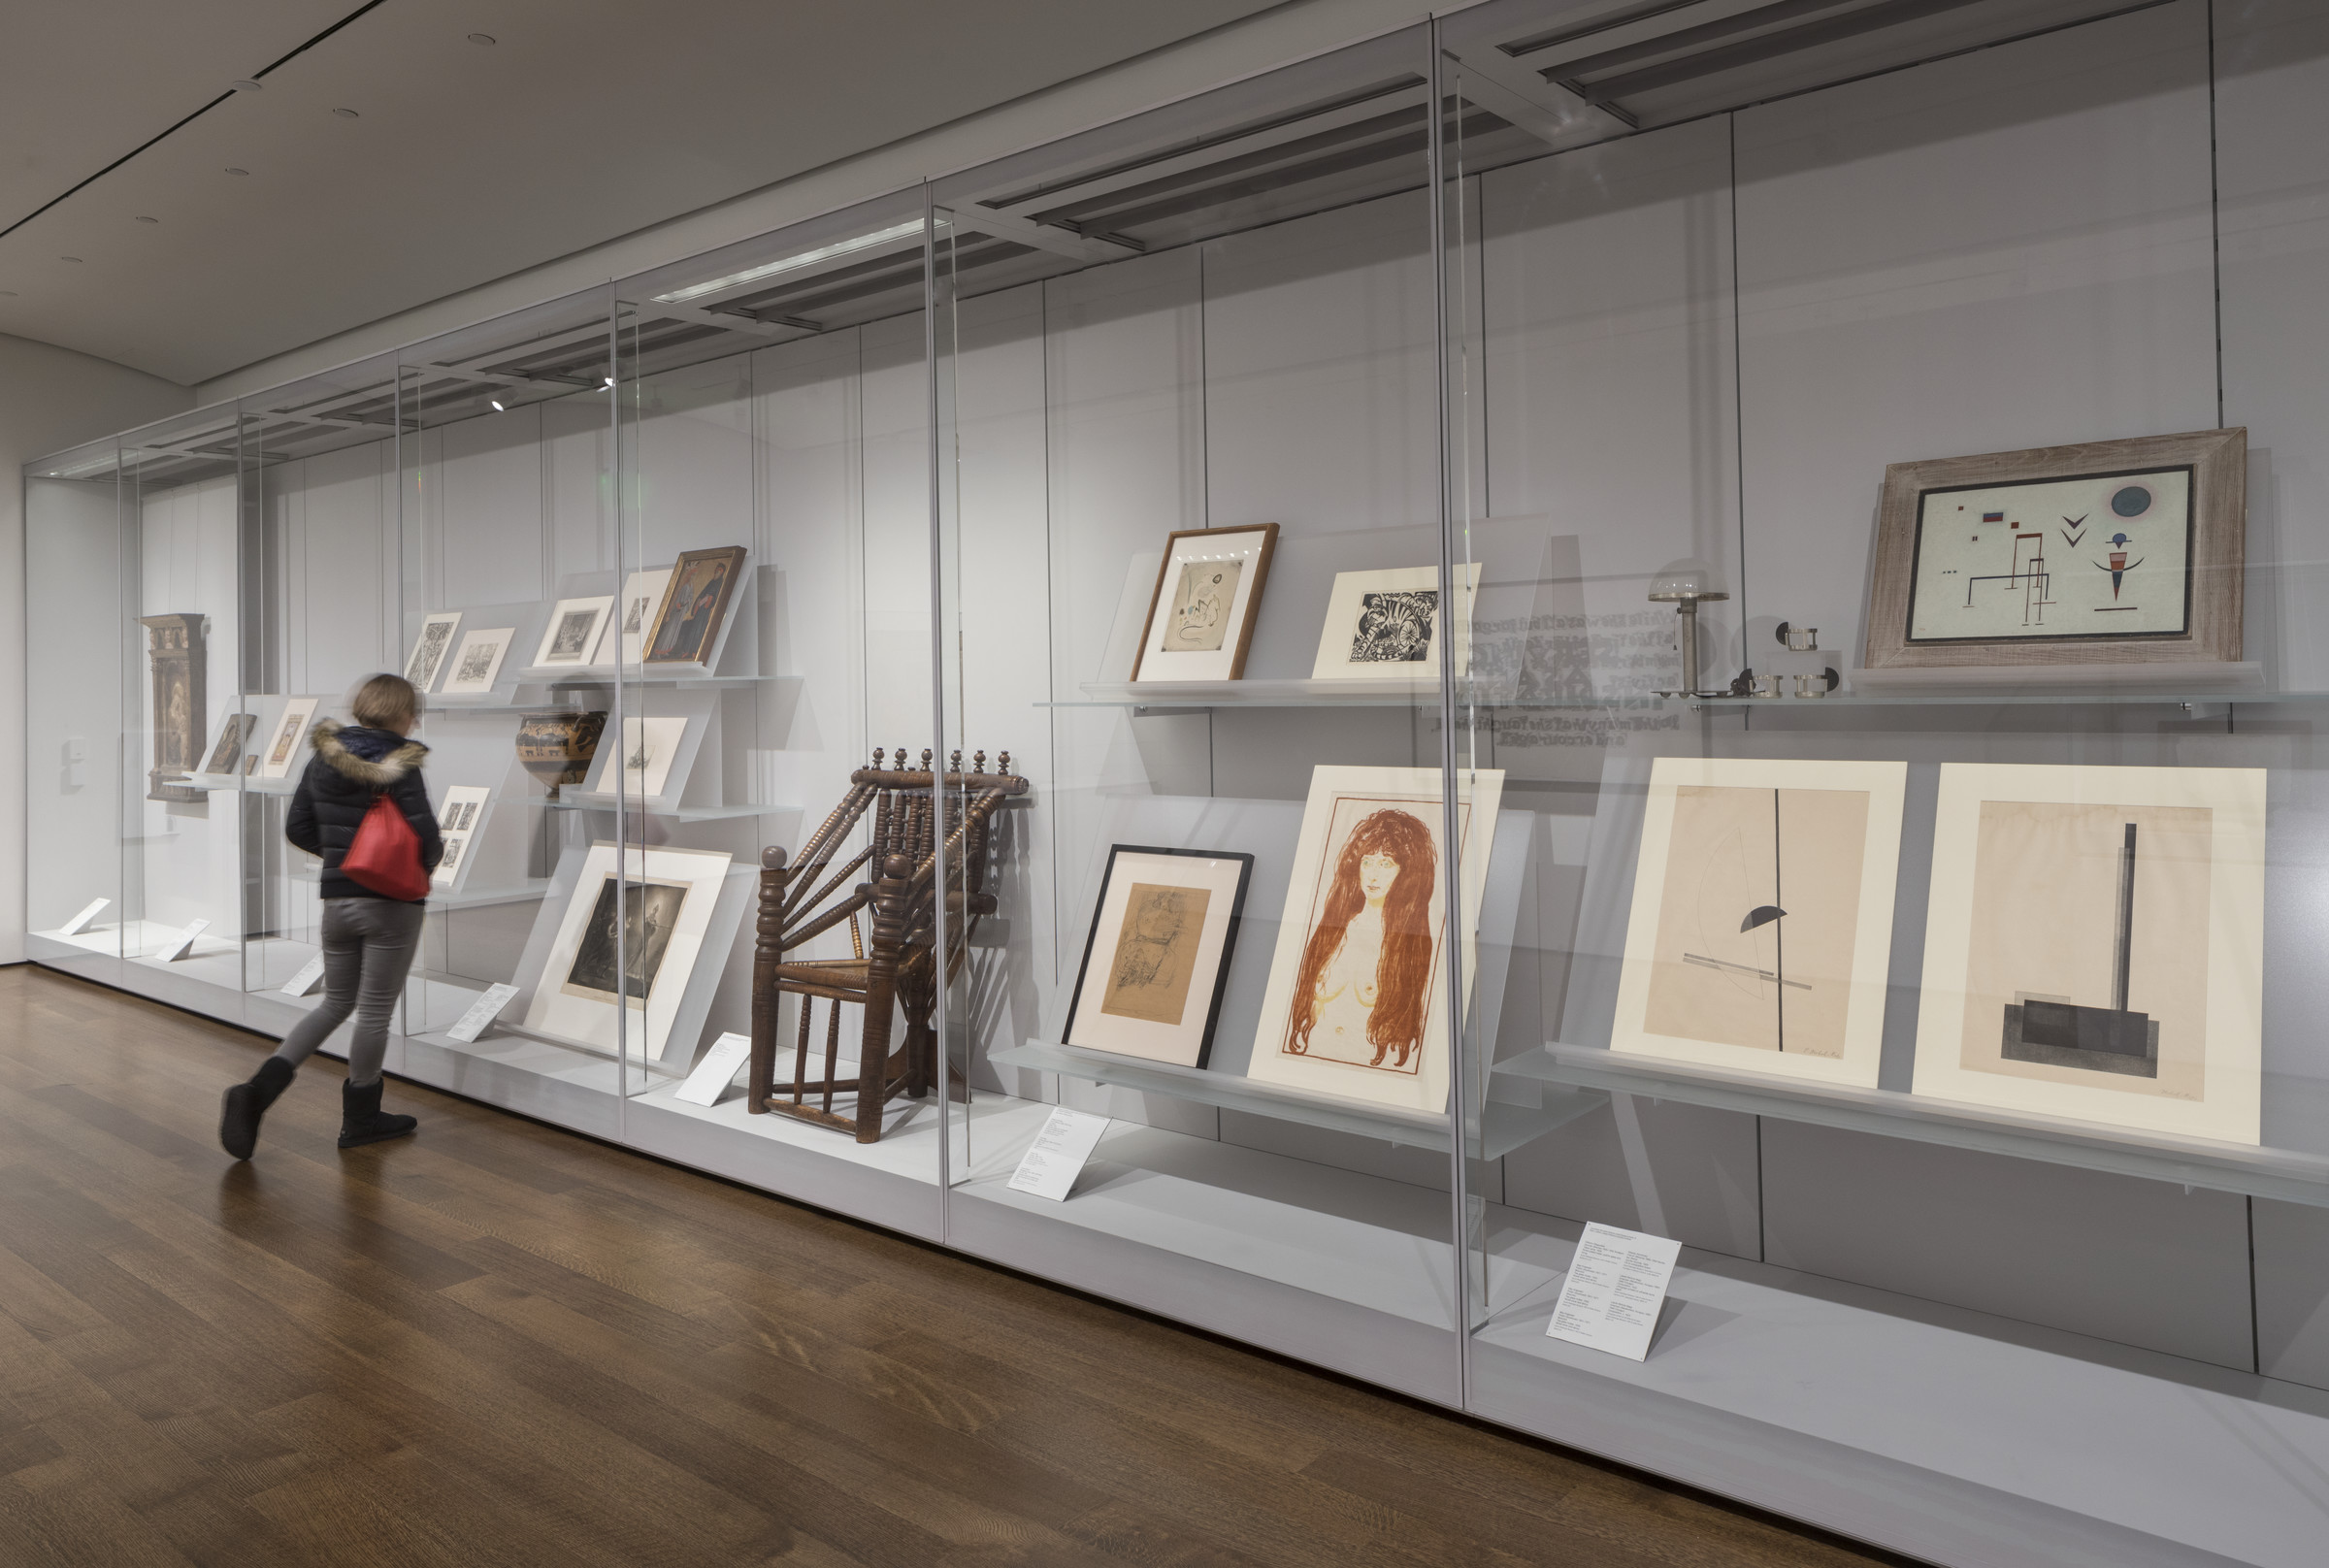 In this photograph of a gallery, several artworks and objects of various sizes appear in a floor to ceiling gallery case enclosed by glass. Near the center of the case is the wooden three-legged chair. A person wearing a hooded jacket and jeans approaches the glass case.